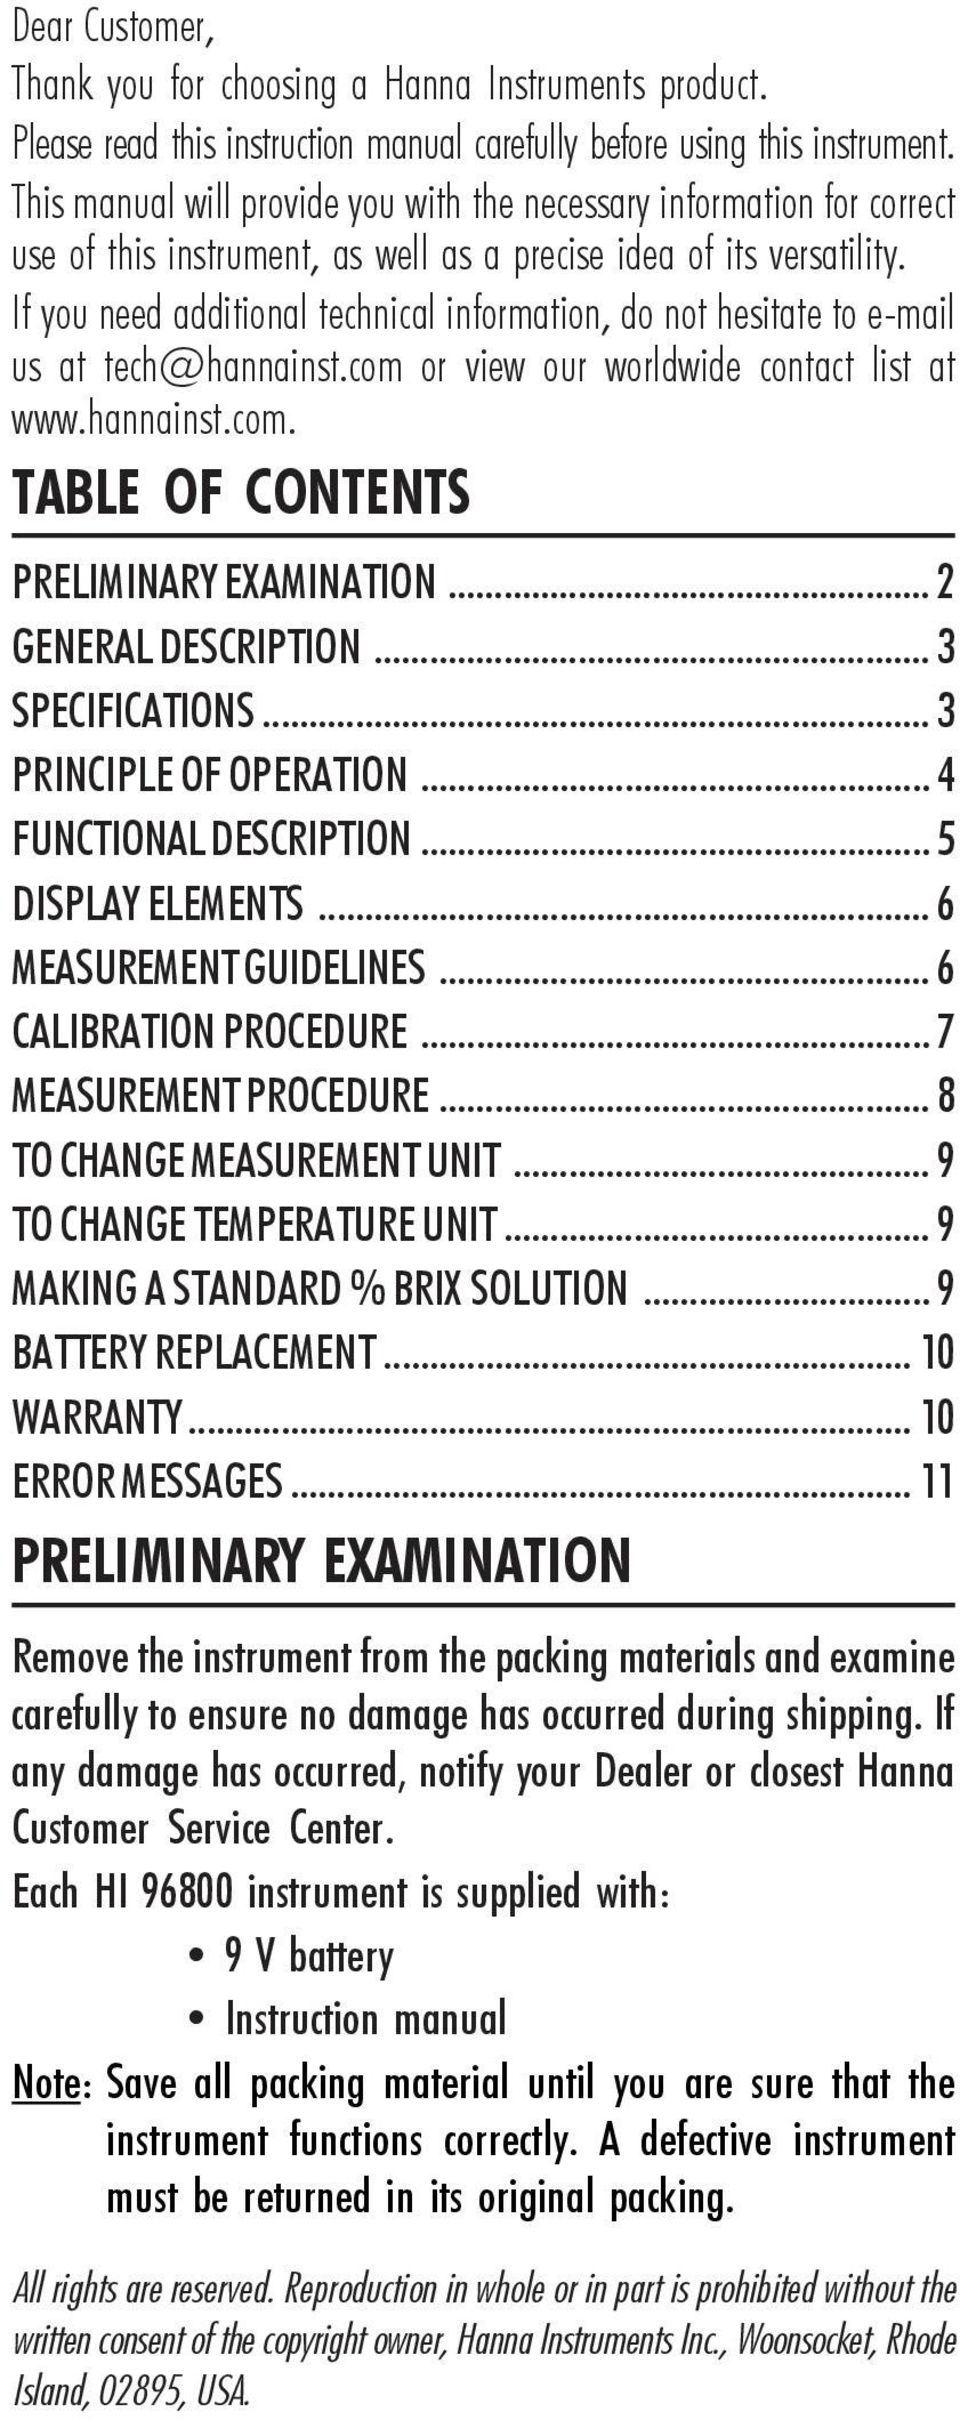 If you need additional technical information, do not hesitate to e-mail us at tech@hannainst.com or view our worldwide contact list at www.hannainst.com. TABLE OF CONTENTS PRELIMINARY EXAMINATION.